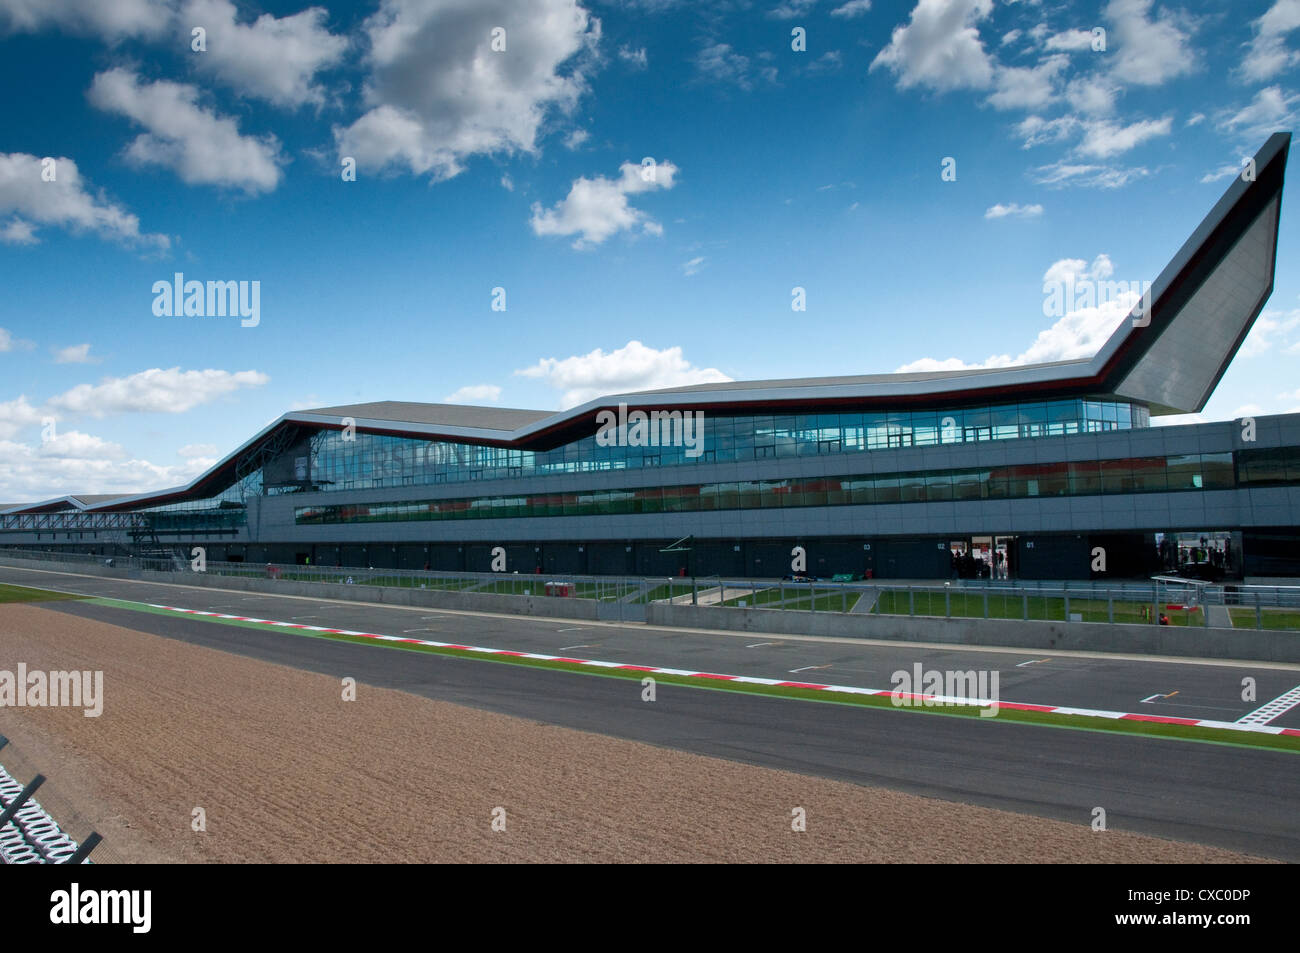 New Silverstone Pit Lane Building 'The Wing' - Stock Image